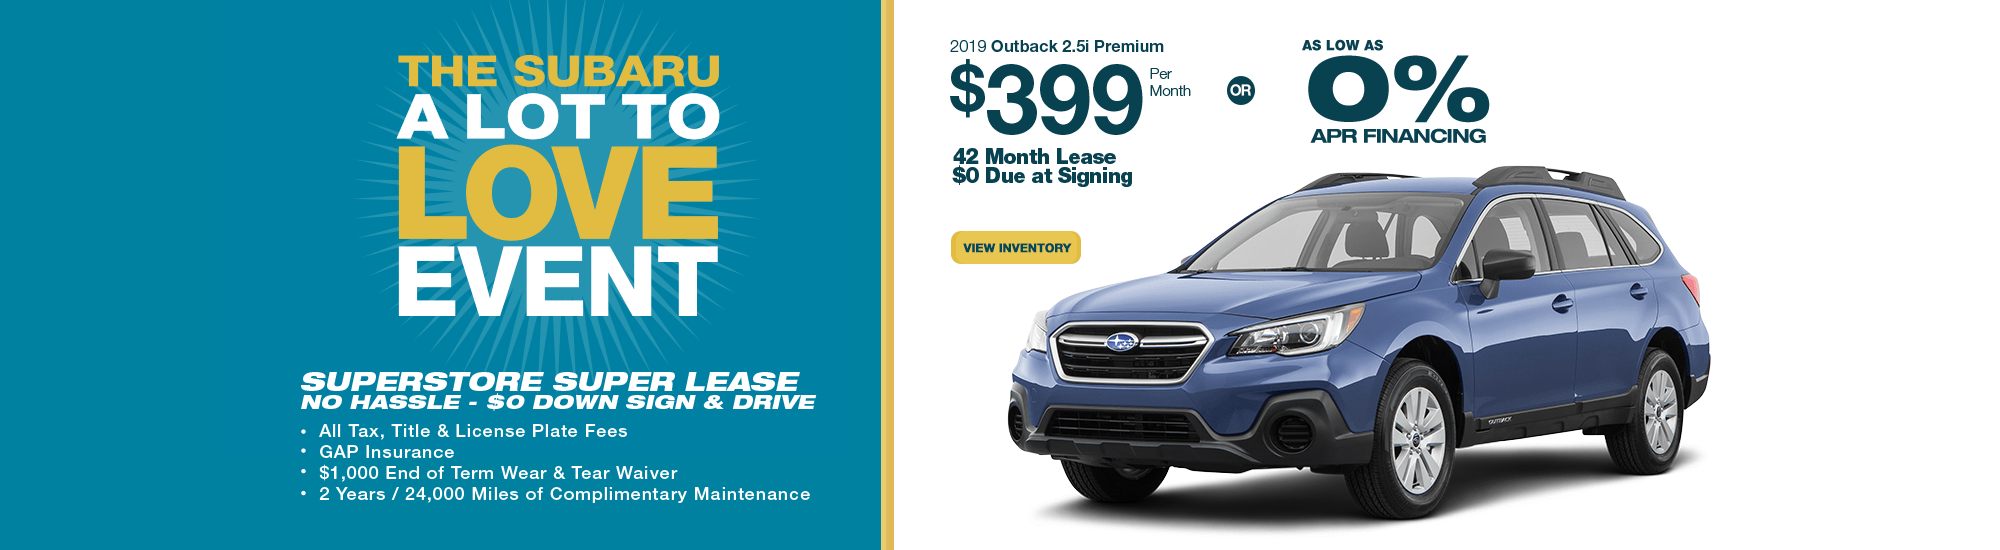 2019 Outback 2.5i Premium lease or low APR special at Subaru Superstore of Surprise